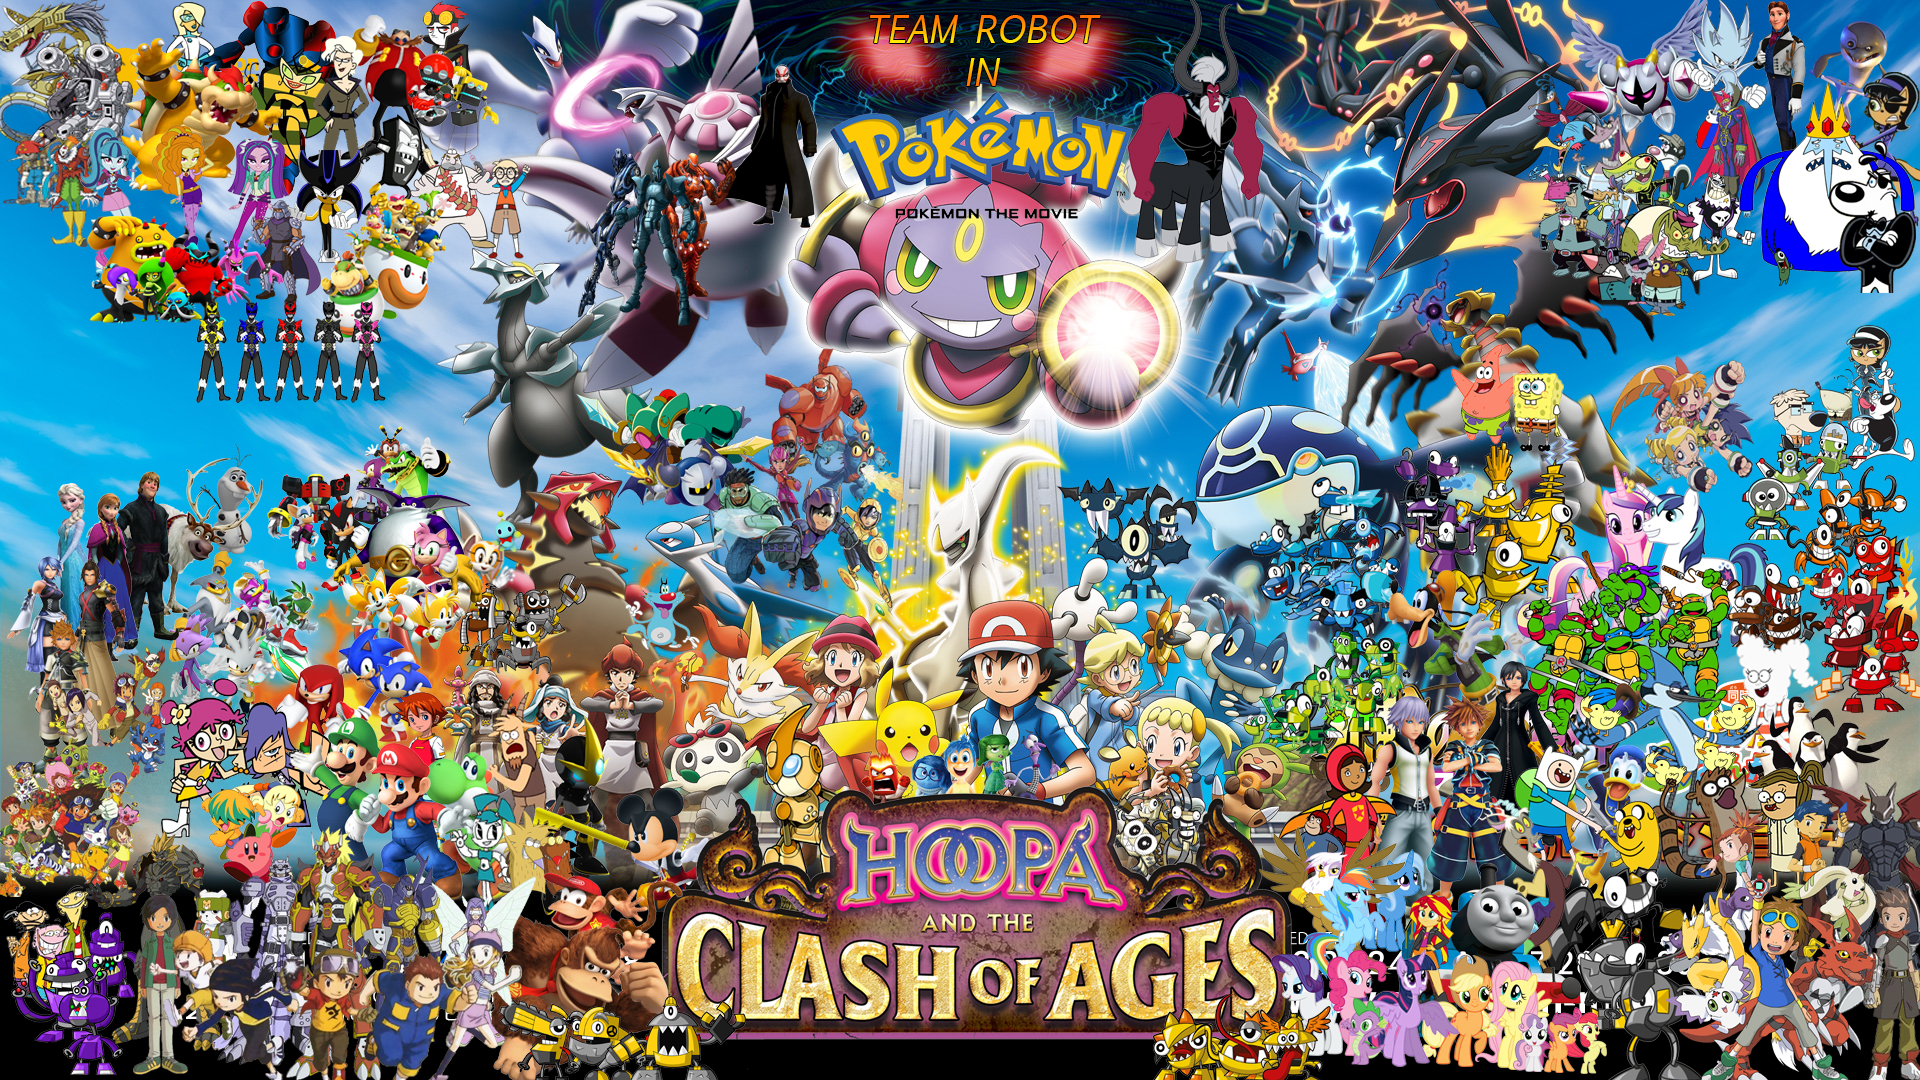 Team Robot In Pokemon The Movie Hoopa And The Clash Of Ages